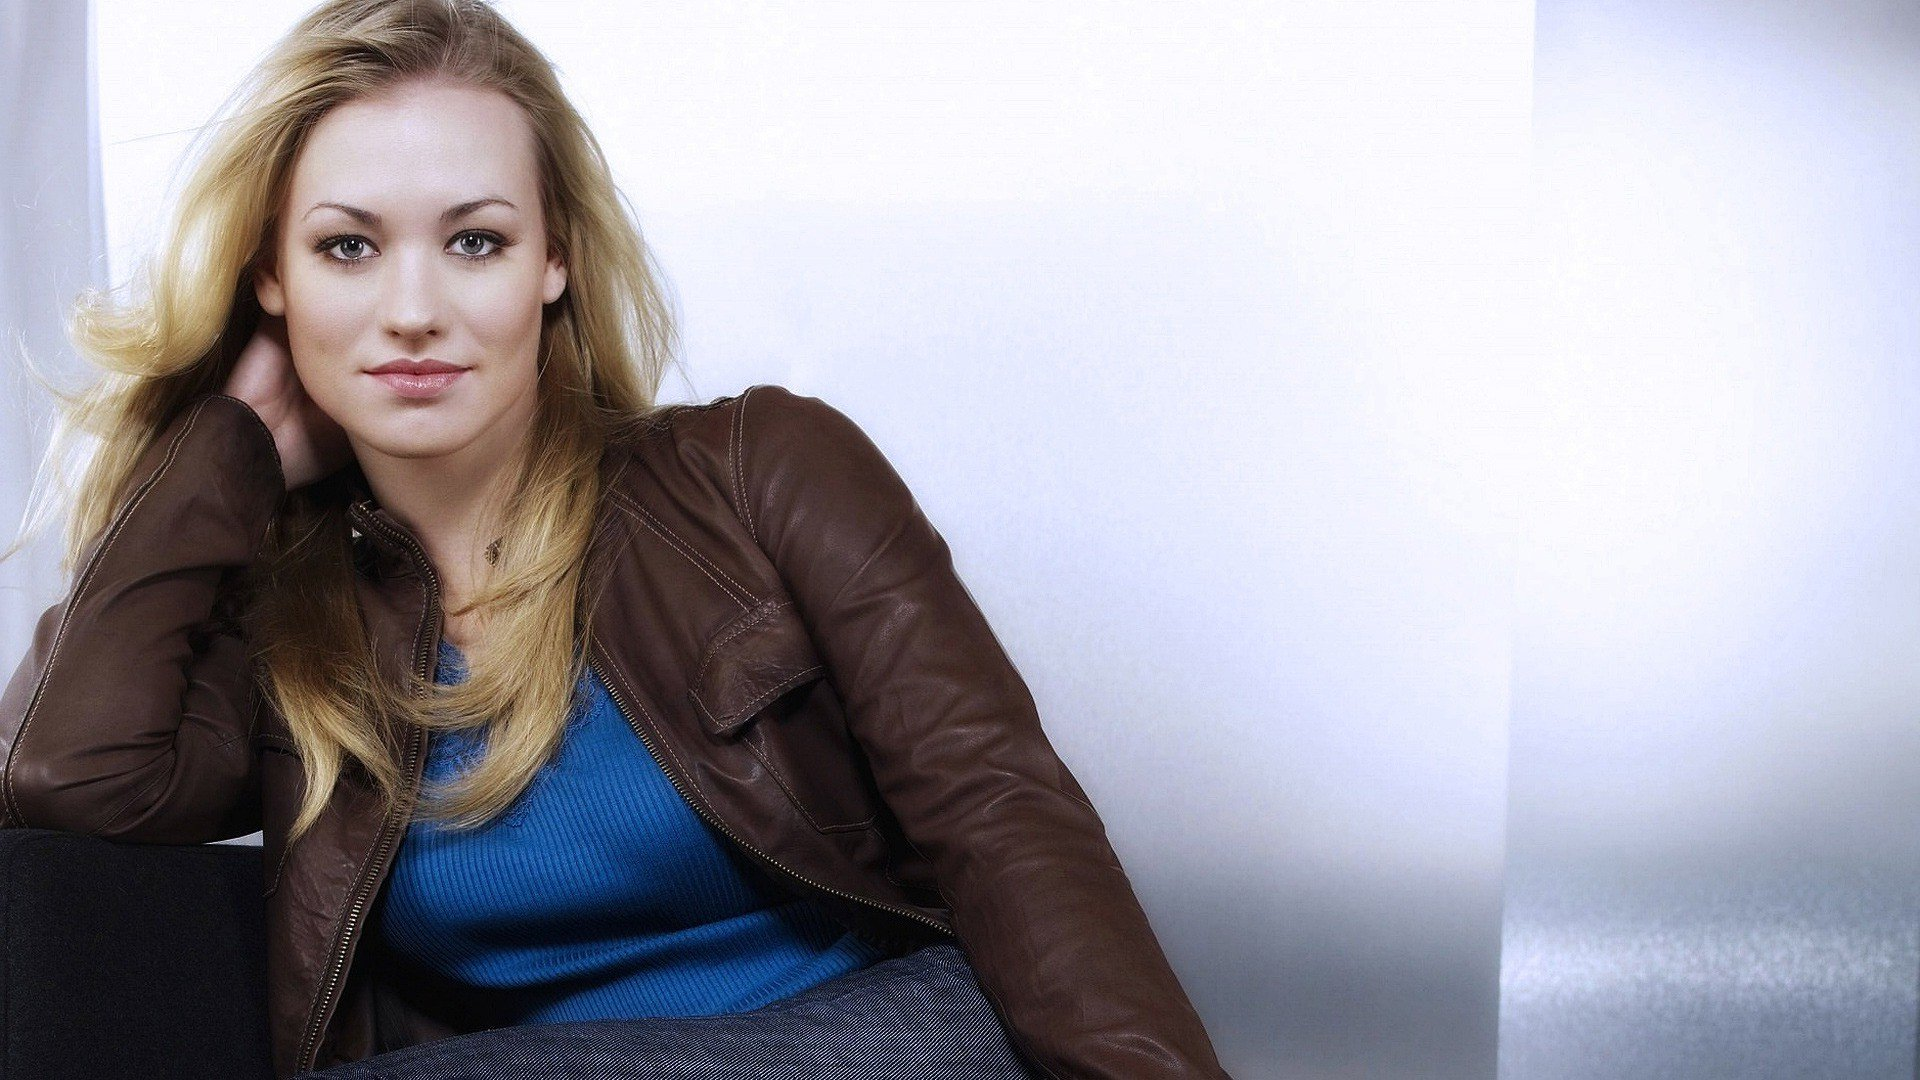 Yvonne Strahovski HD Wallpapers 1920x1080